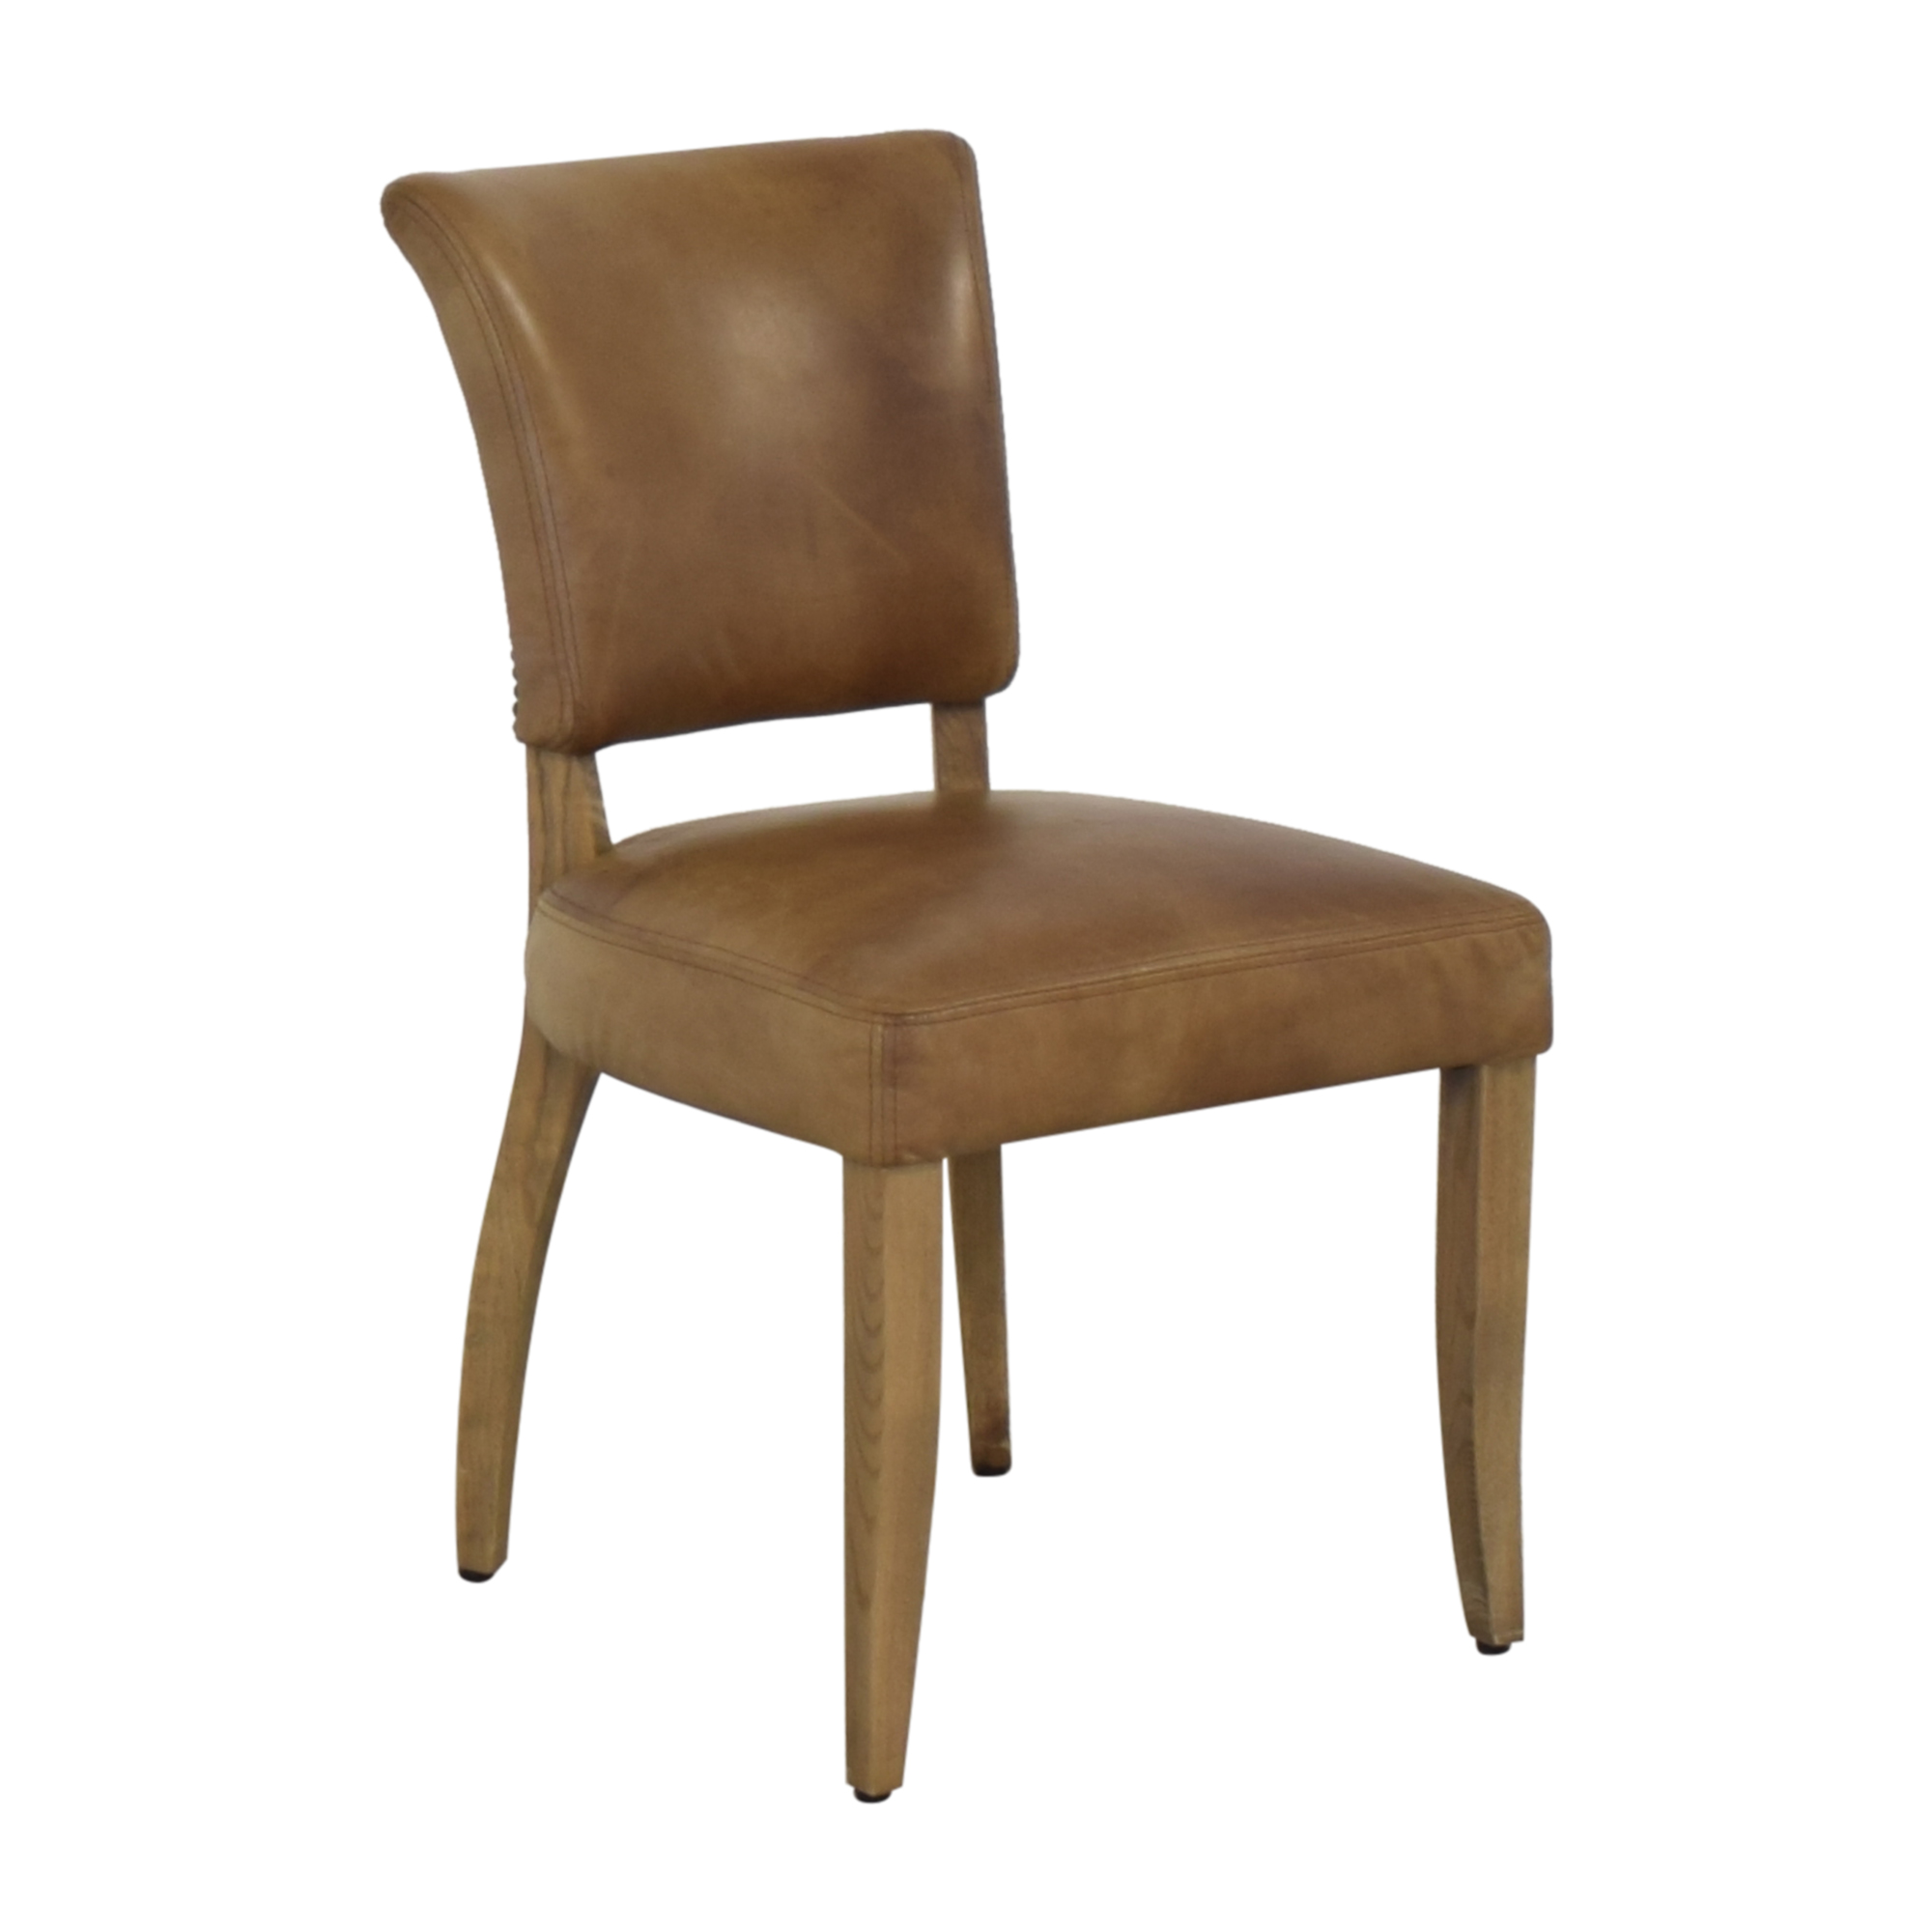 Restoration Hardware Restoration Hardware Adele Leather Side Chair nj